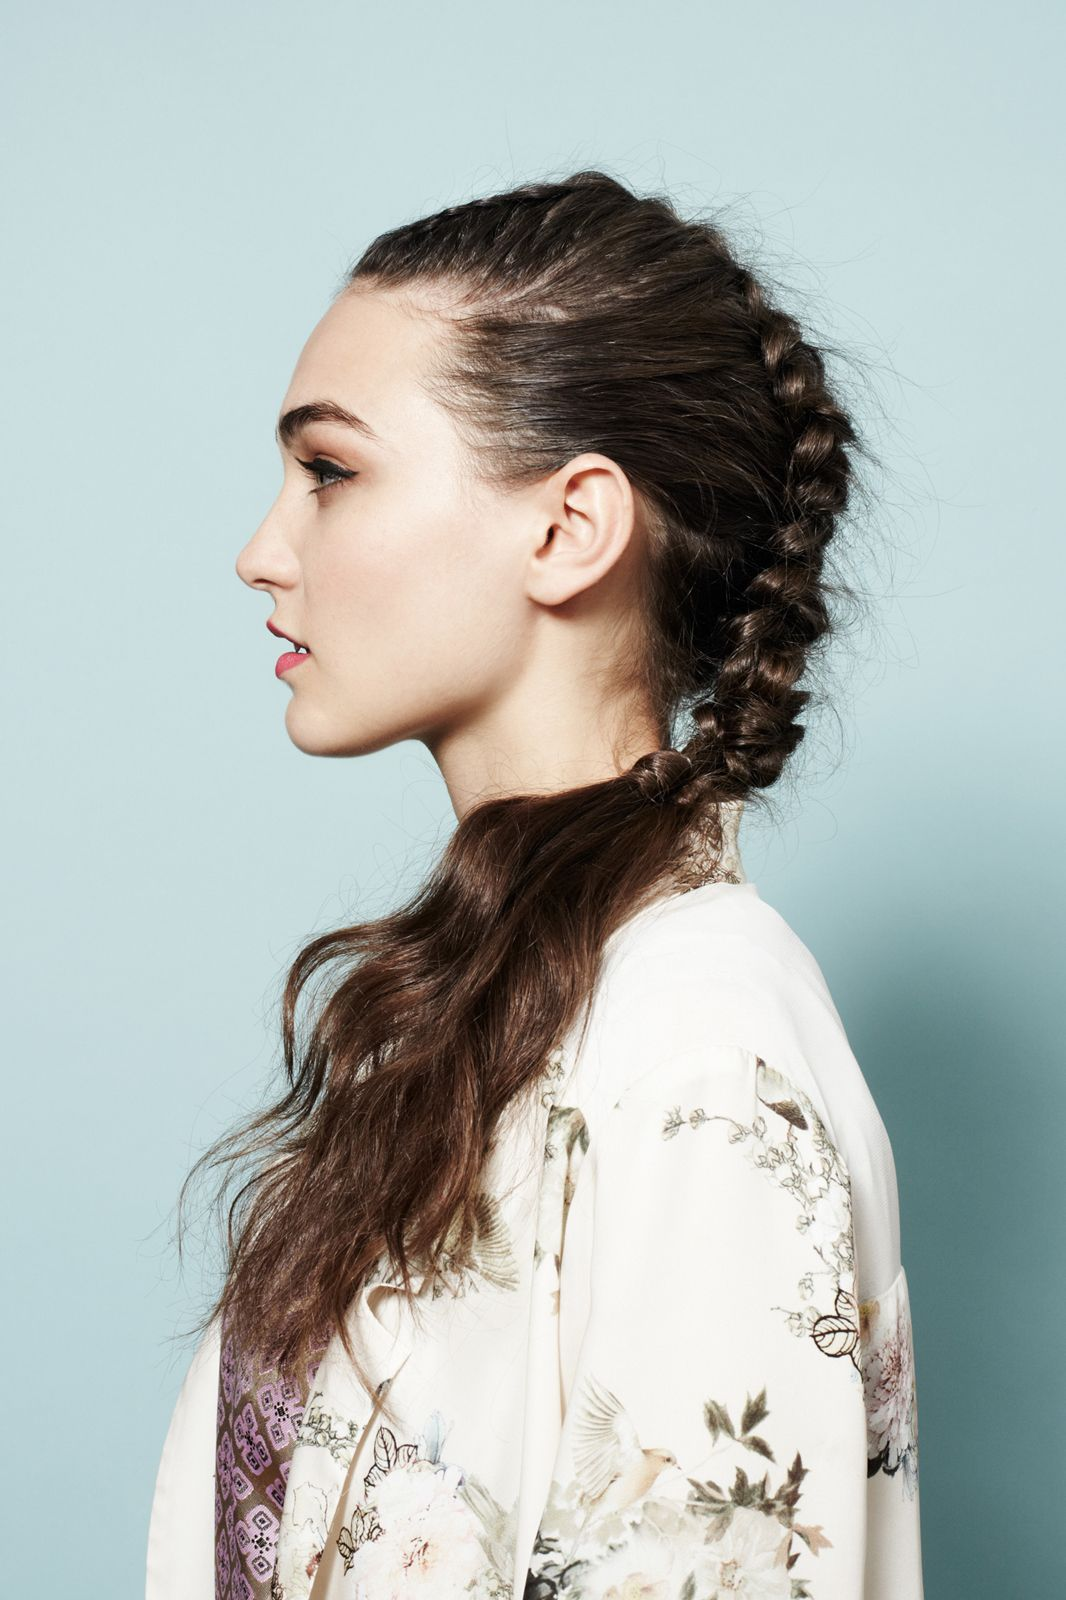 New braid styles for summerhair looks for hot weather summer hair